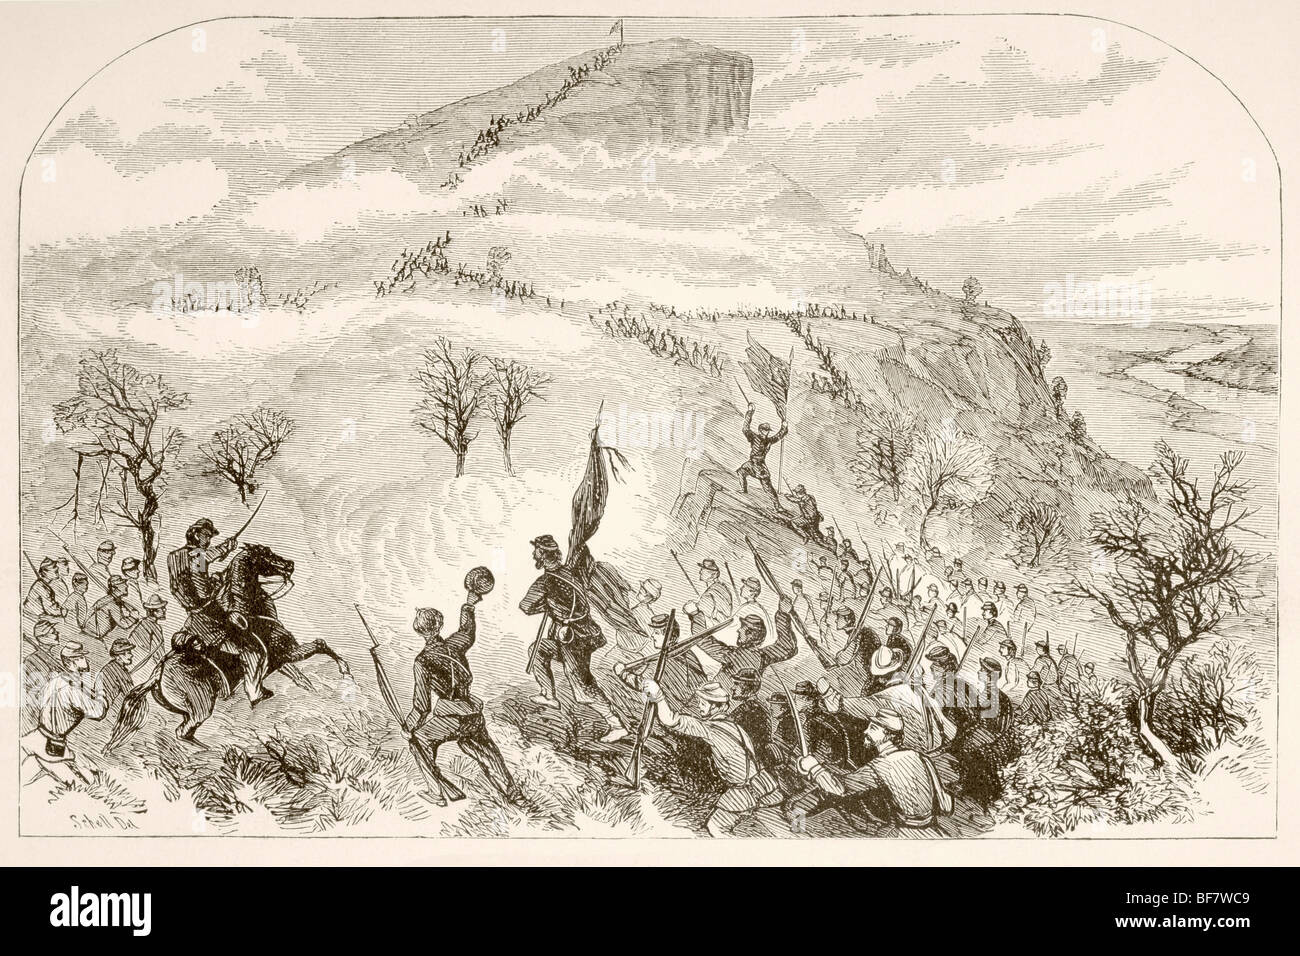 The Battle of Lookout Mountain, November 24, 1863, during the American Civil War. - Stock Image